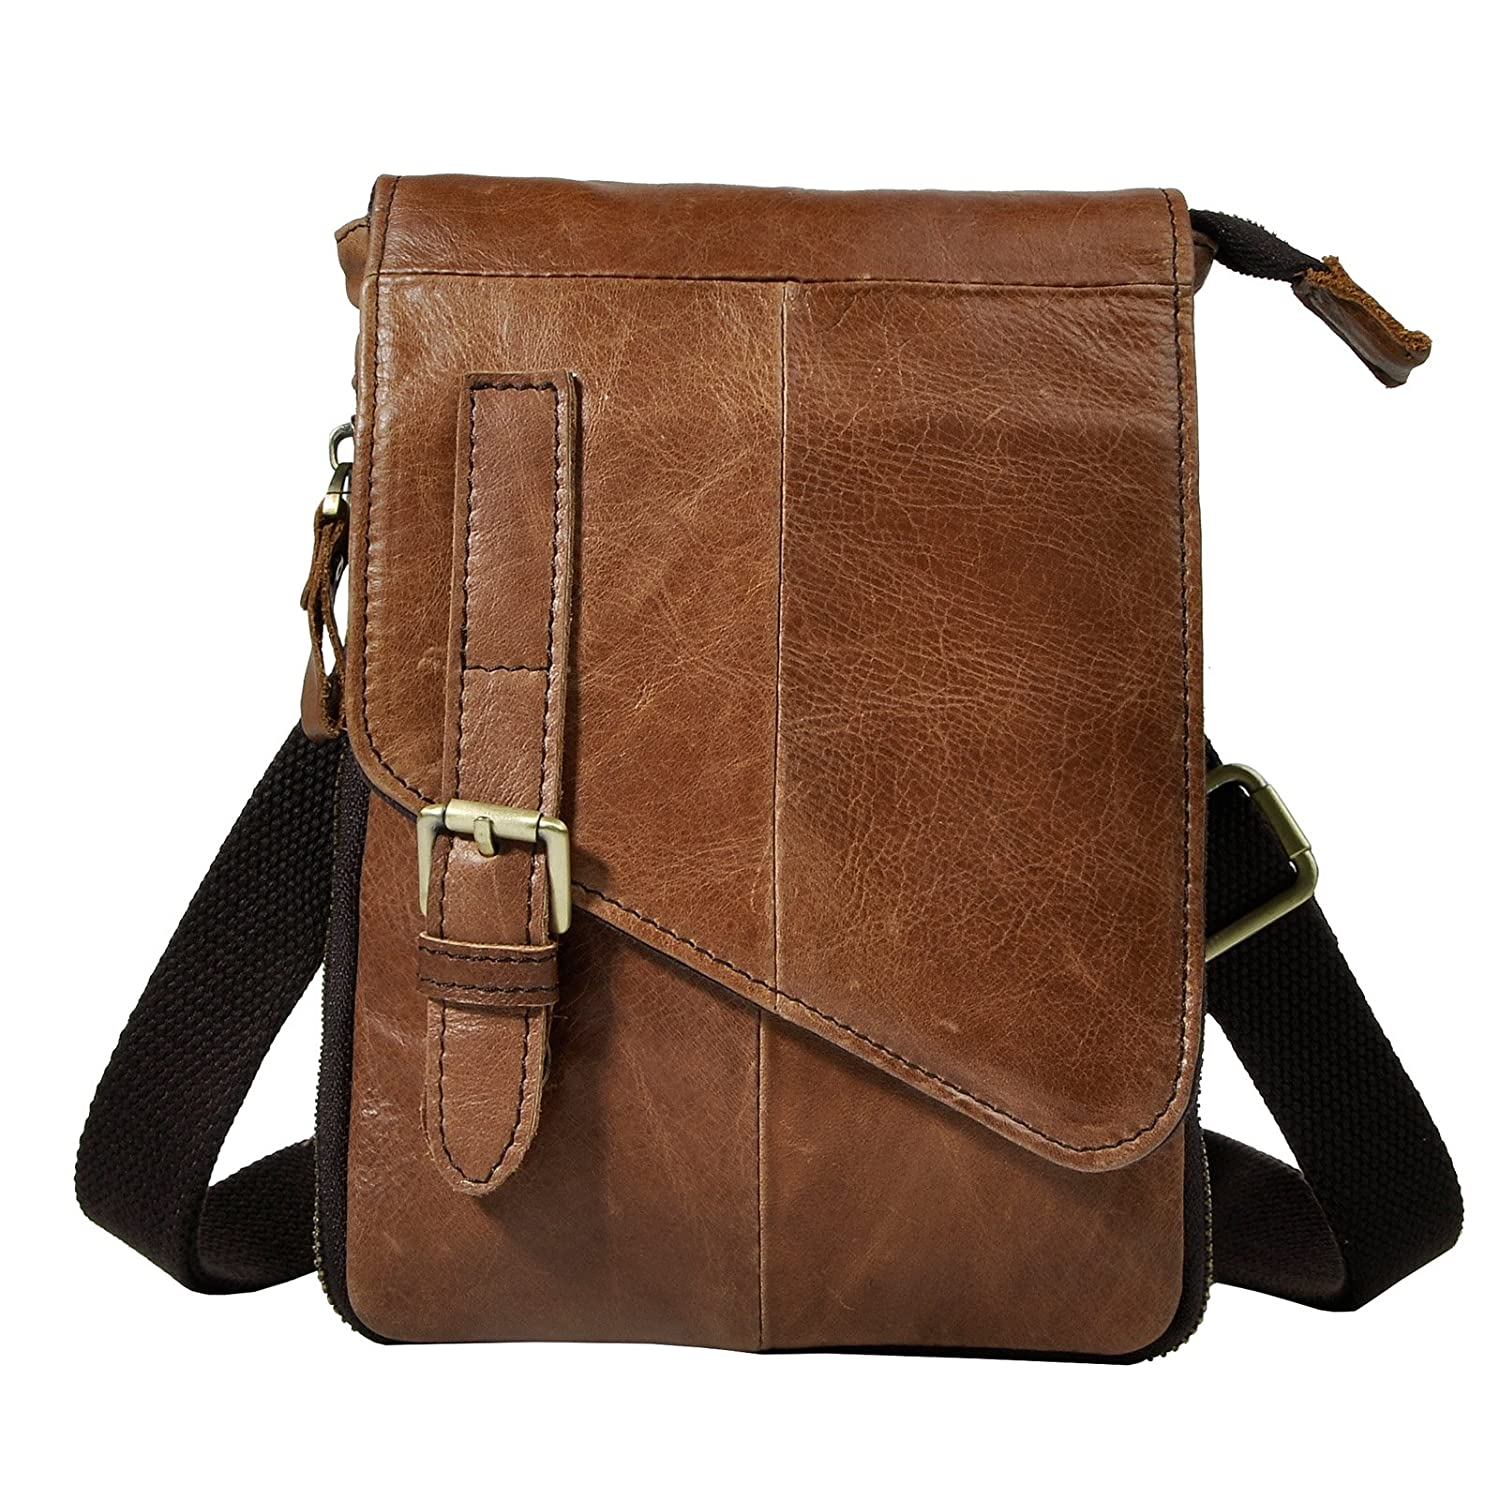 Le aokuu Mens Genuine Leather Coffee Fanny Small Messenger Shoulder Waist Bag Pack The 611-6 light brown